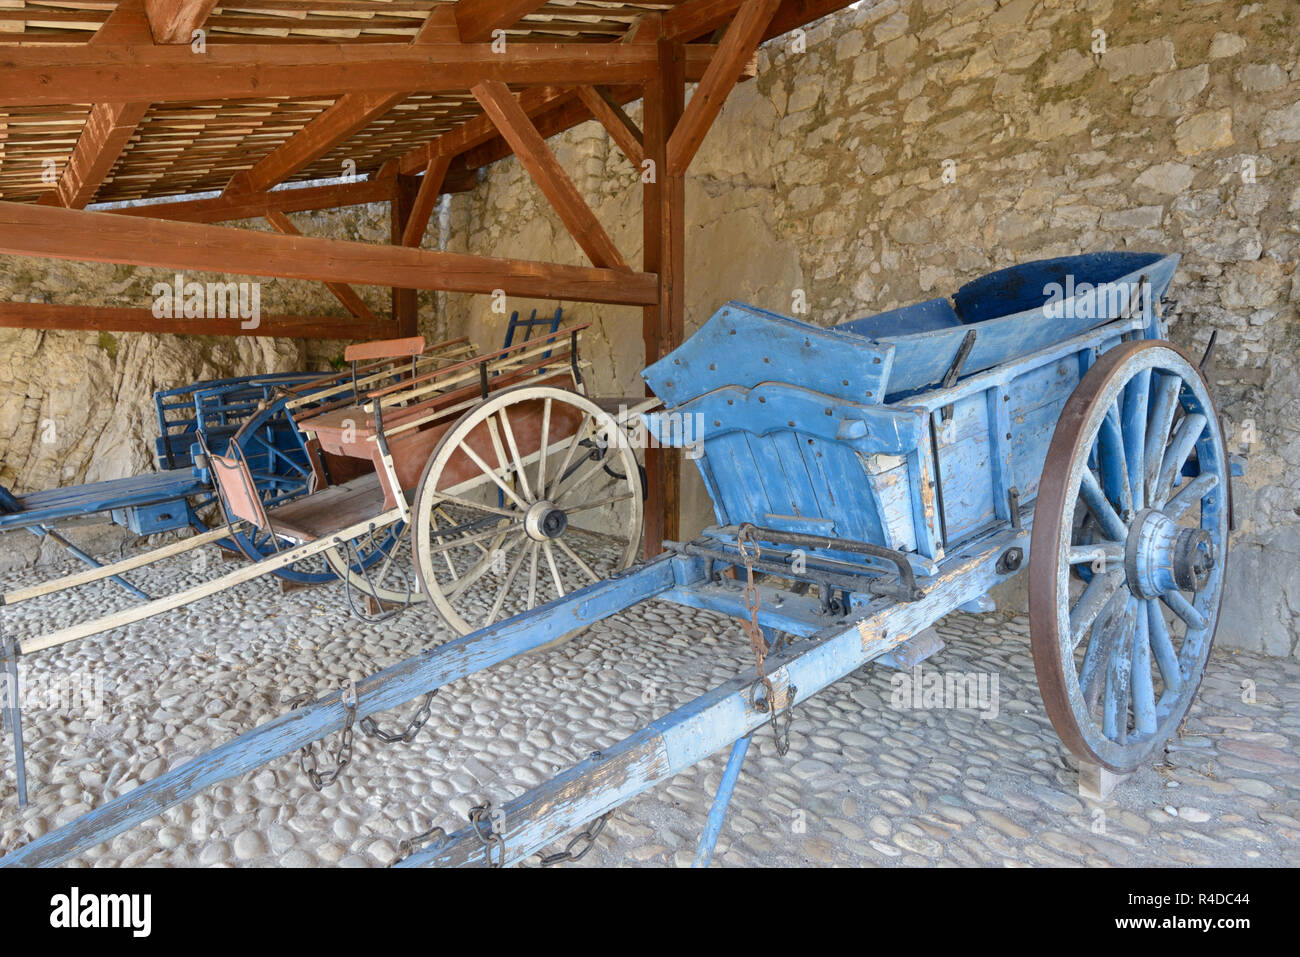 Vintage Old Horse-Drawn Carts c19th including a Fourragère or Hay Cart, a Jardiniere or Garden Cart & Tombereau on Display Citadel Sisteron - Stock Image